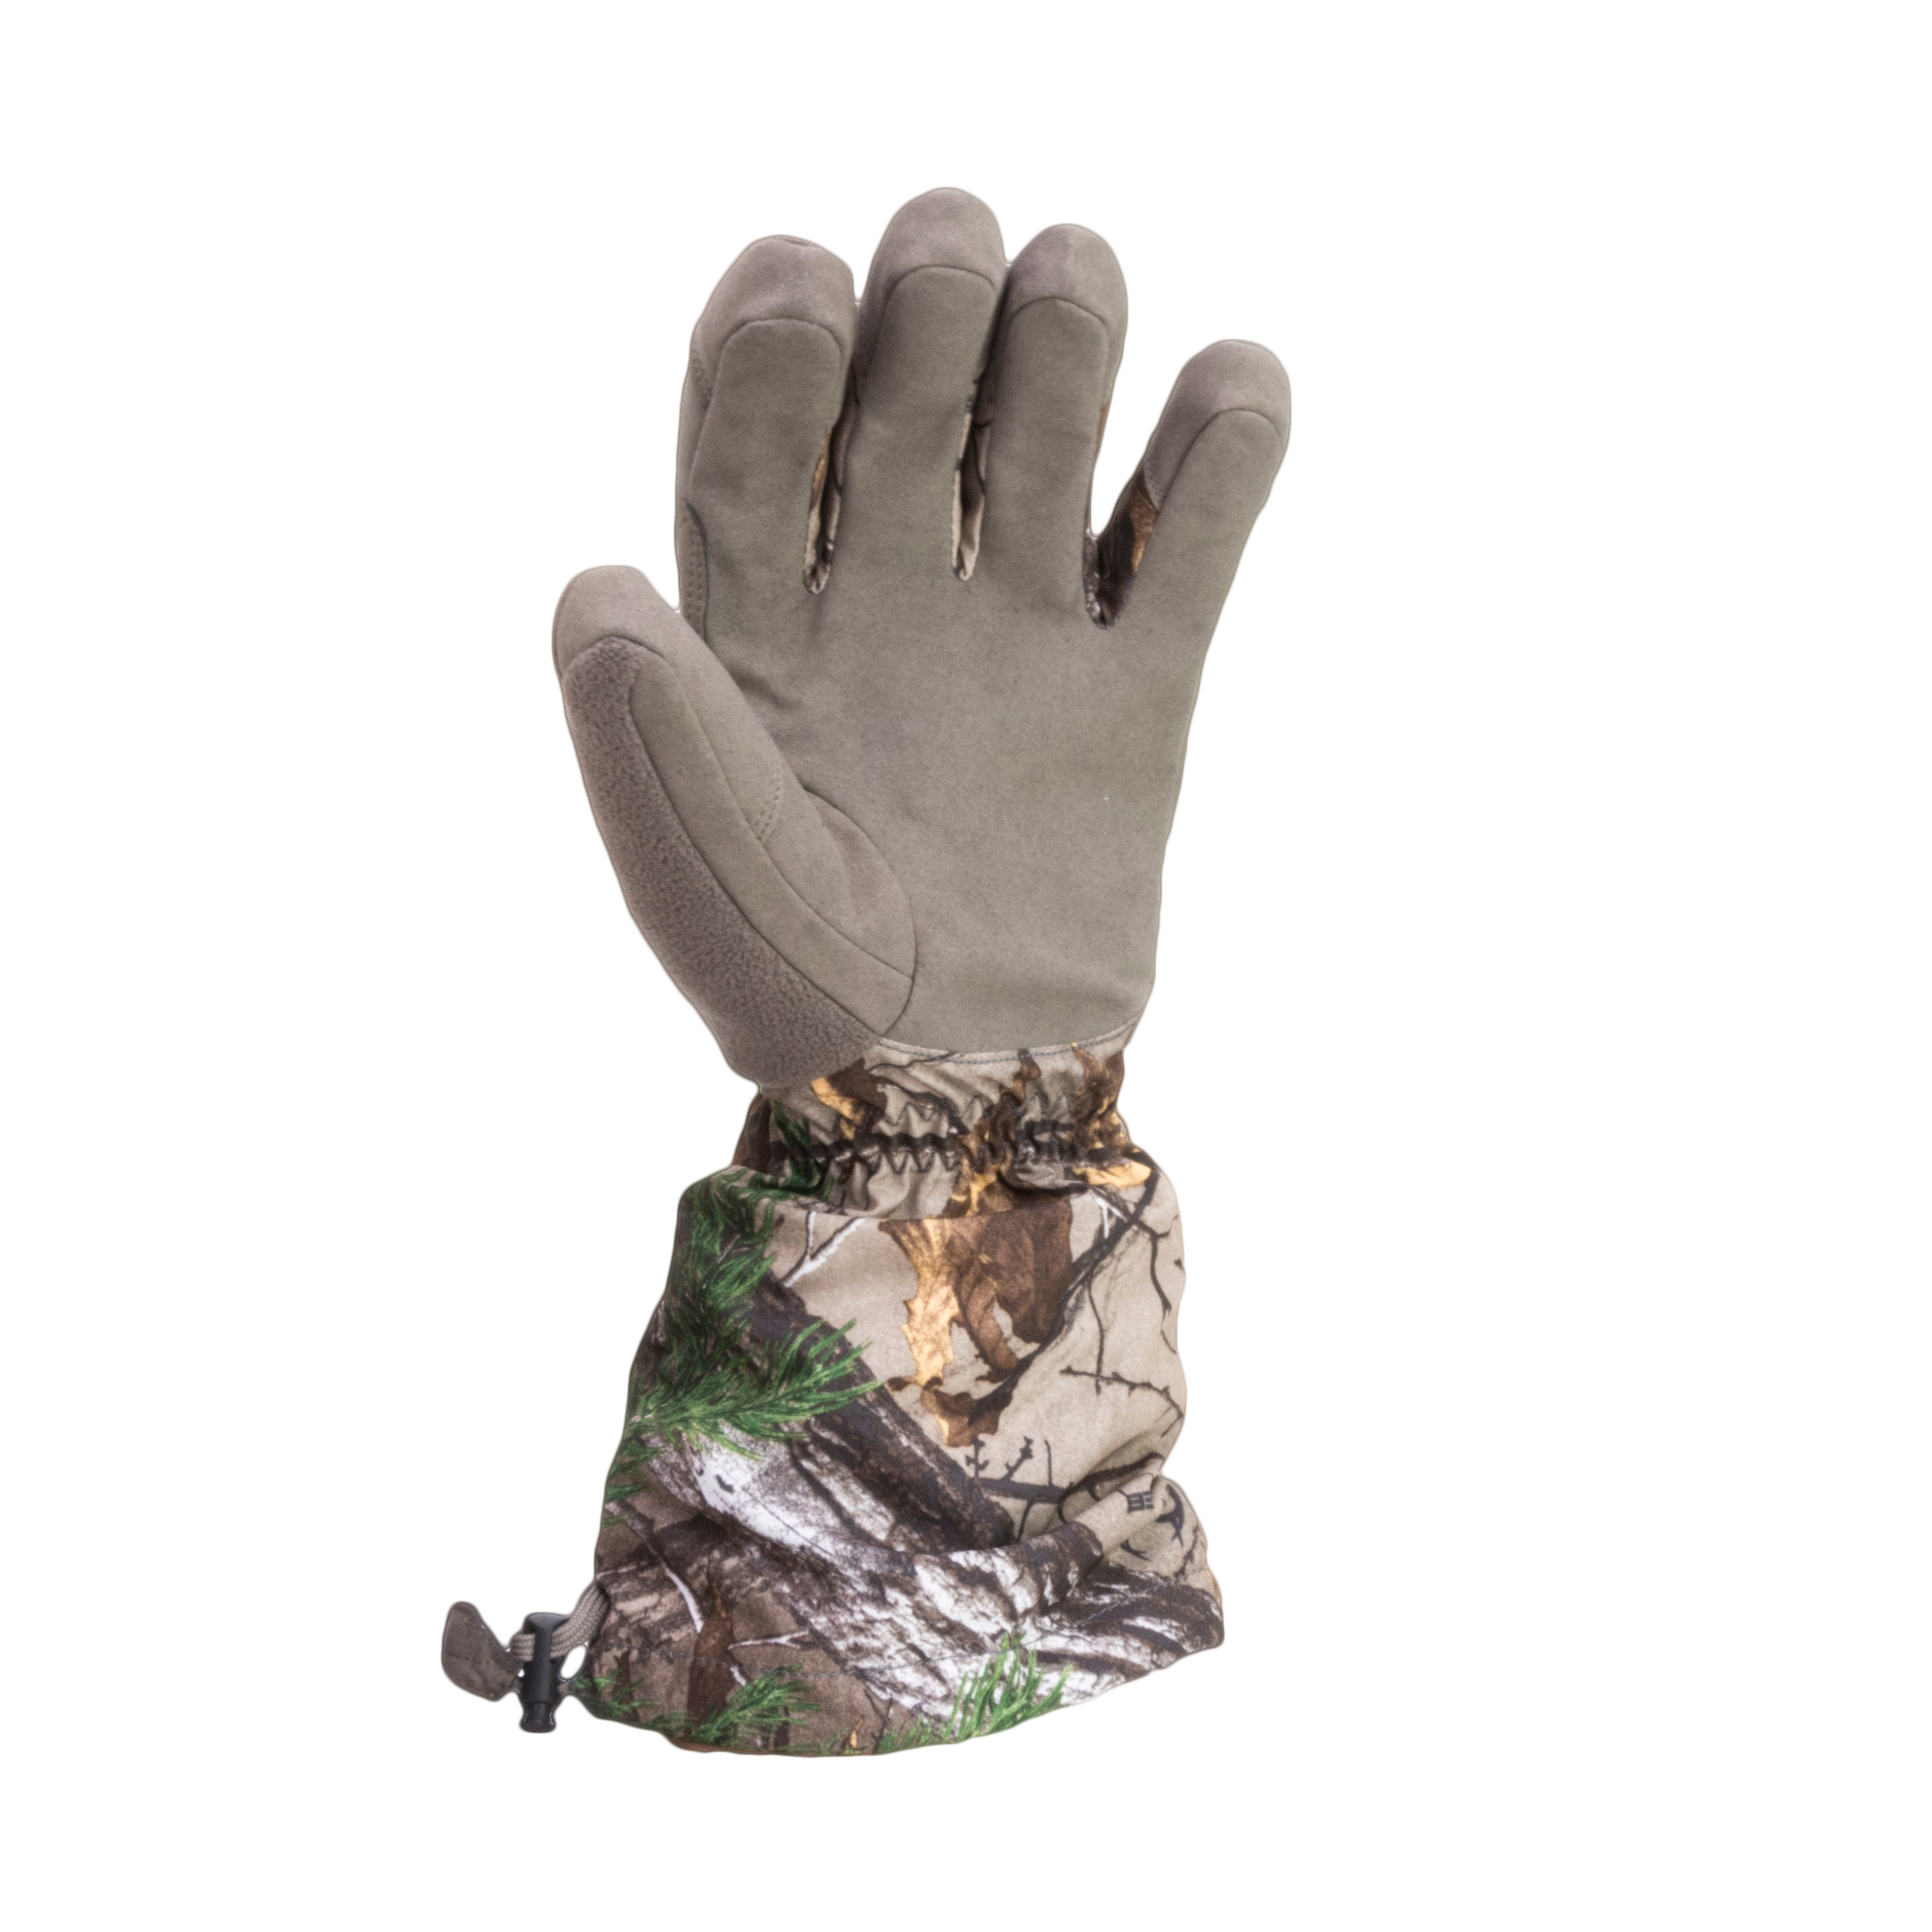 Waterproof Extreme Cold Weather Camo Gauntlet